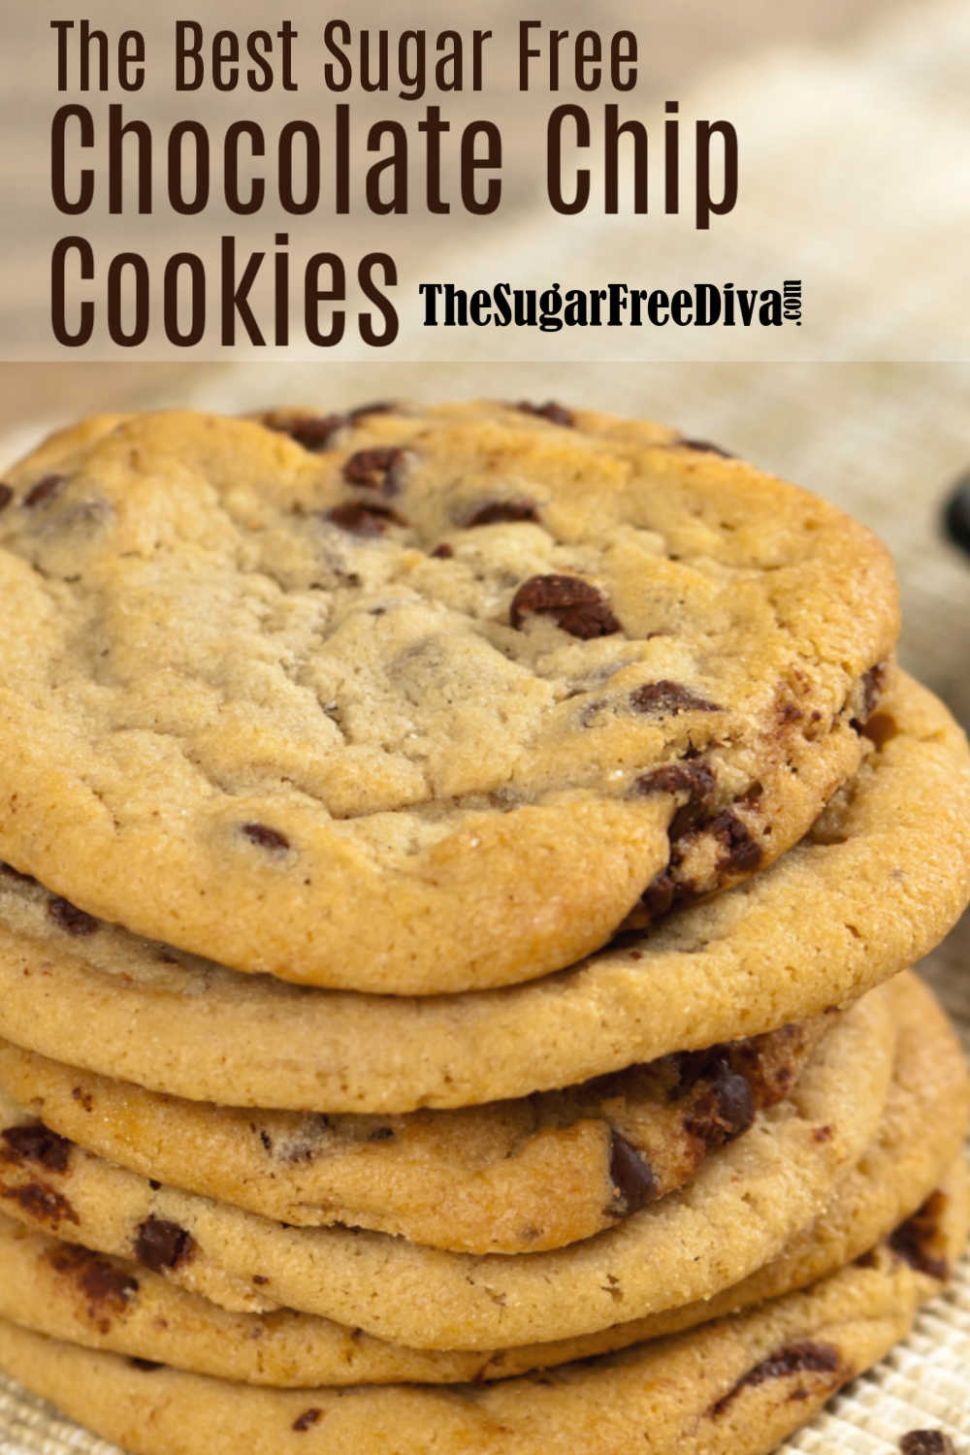 The Best Sugar Free Chocolate Chip Cookies Recipe - Dessert Recipes For Diabetics Sugar Free